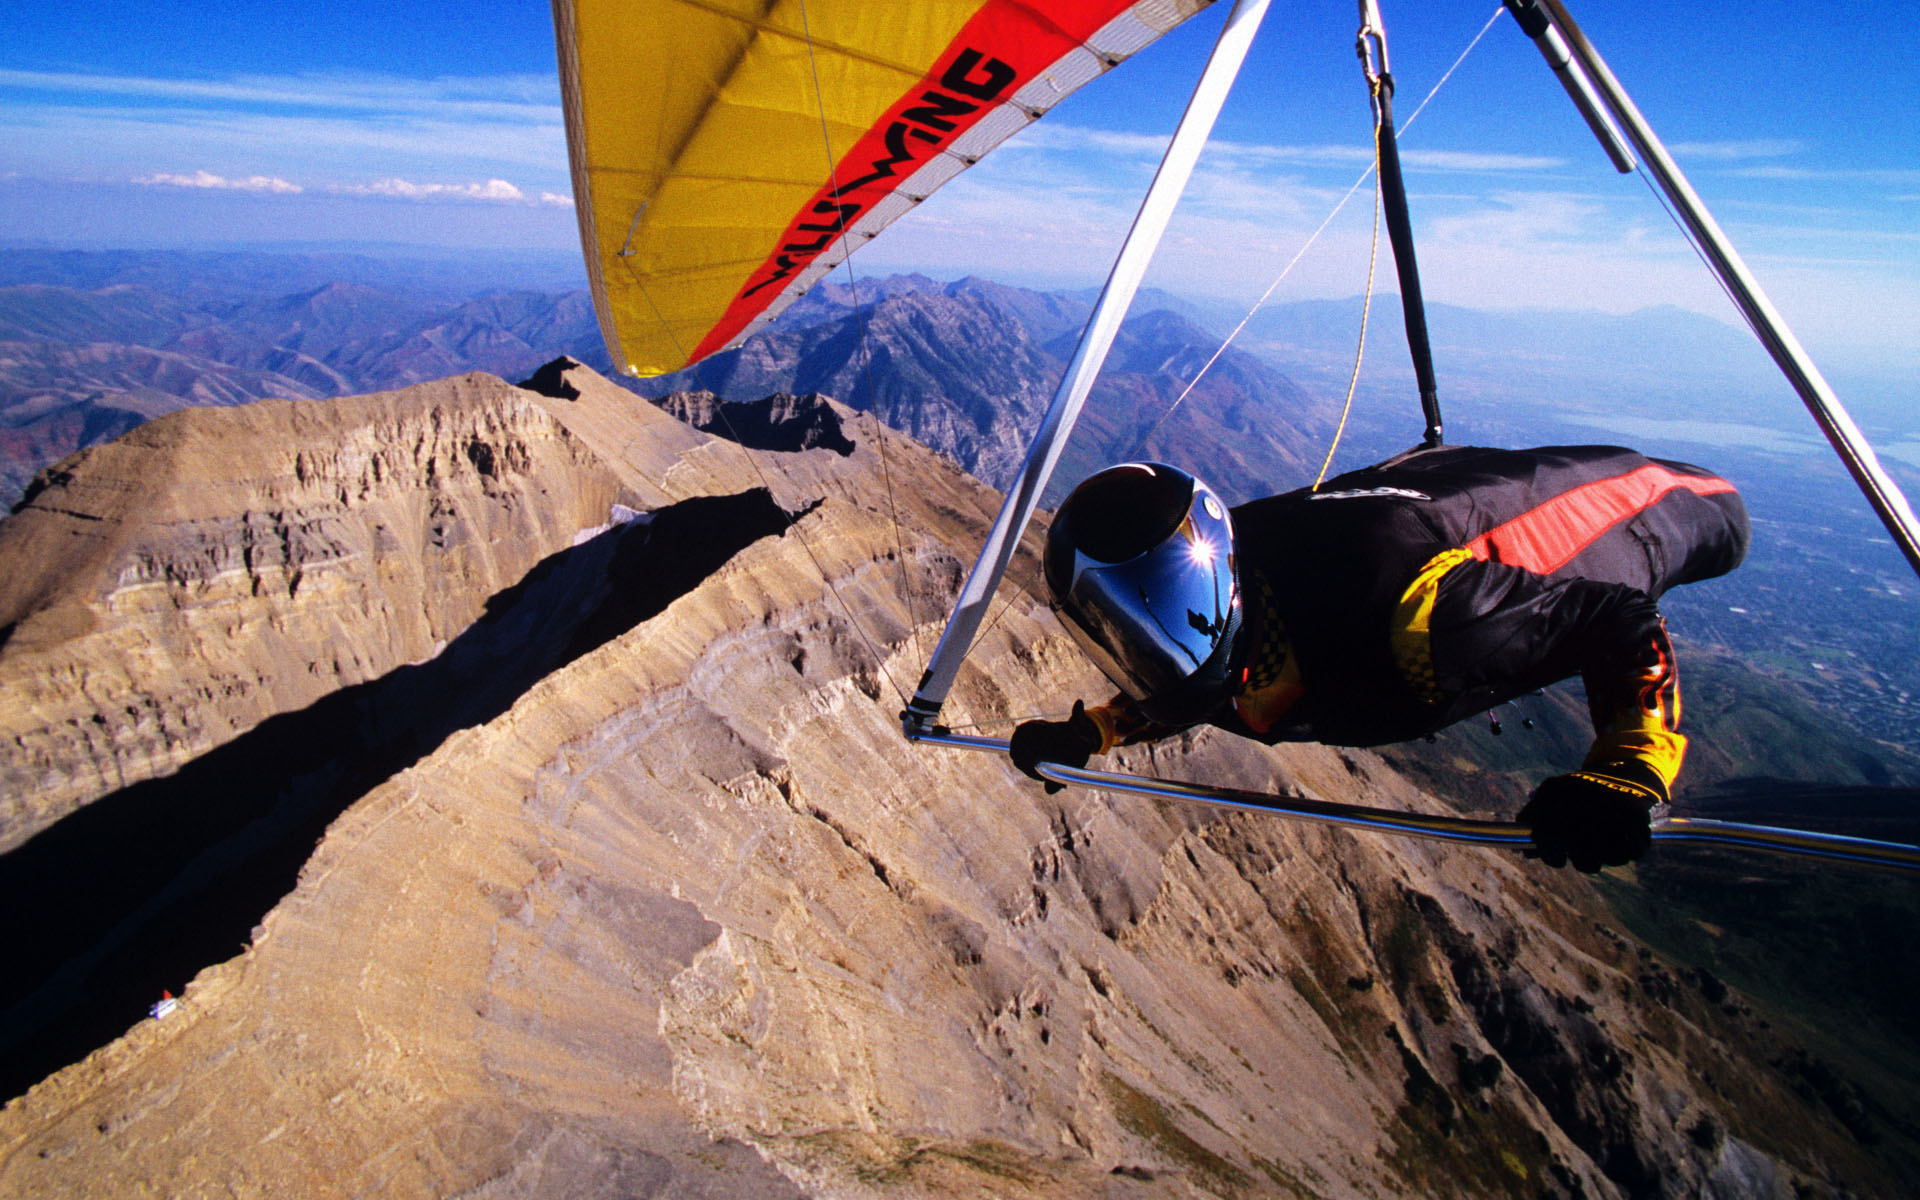 1920x1200 - Hang Gliding Wallpapers 7